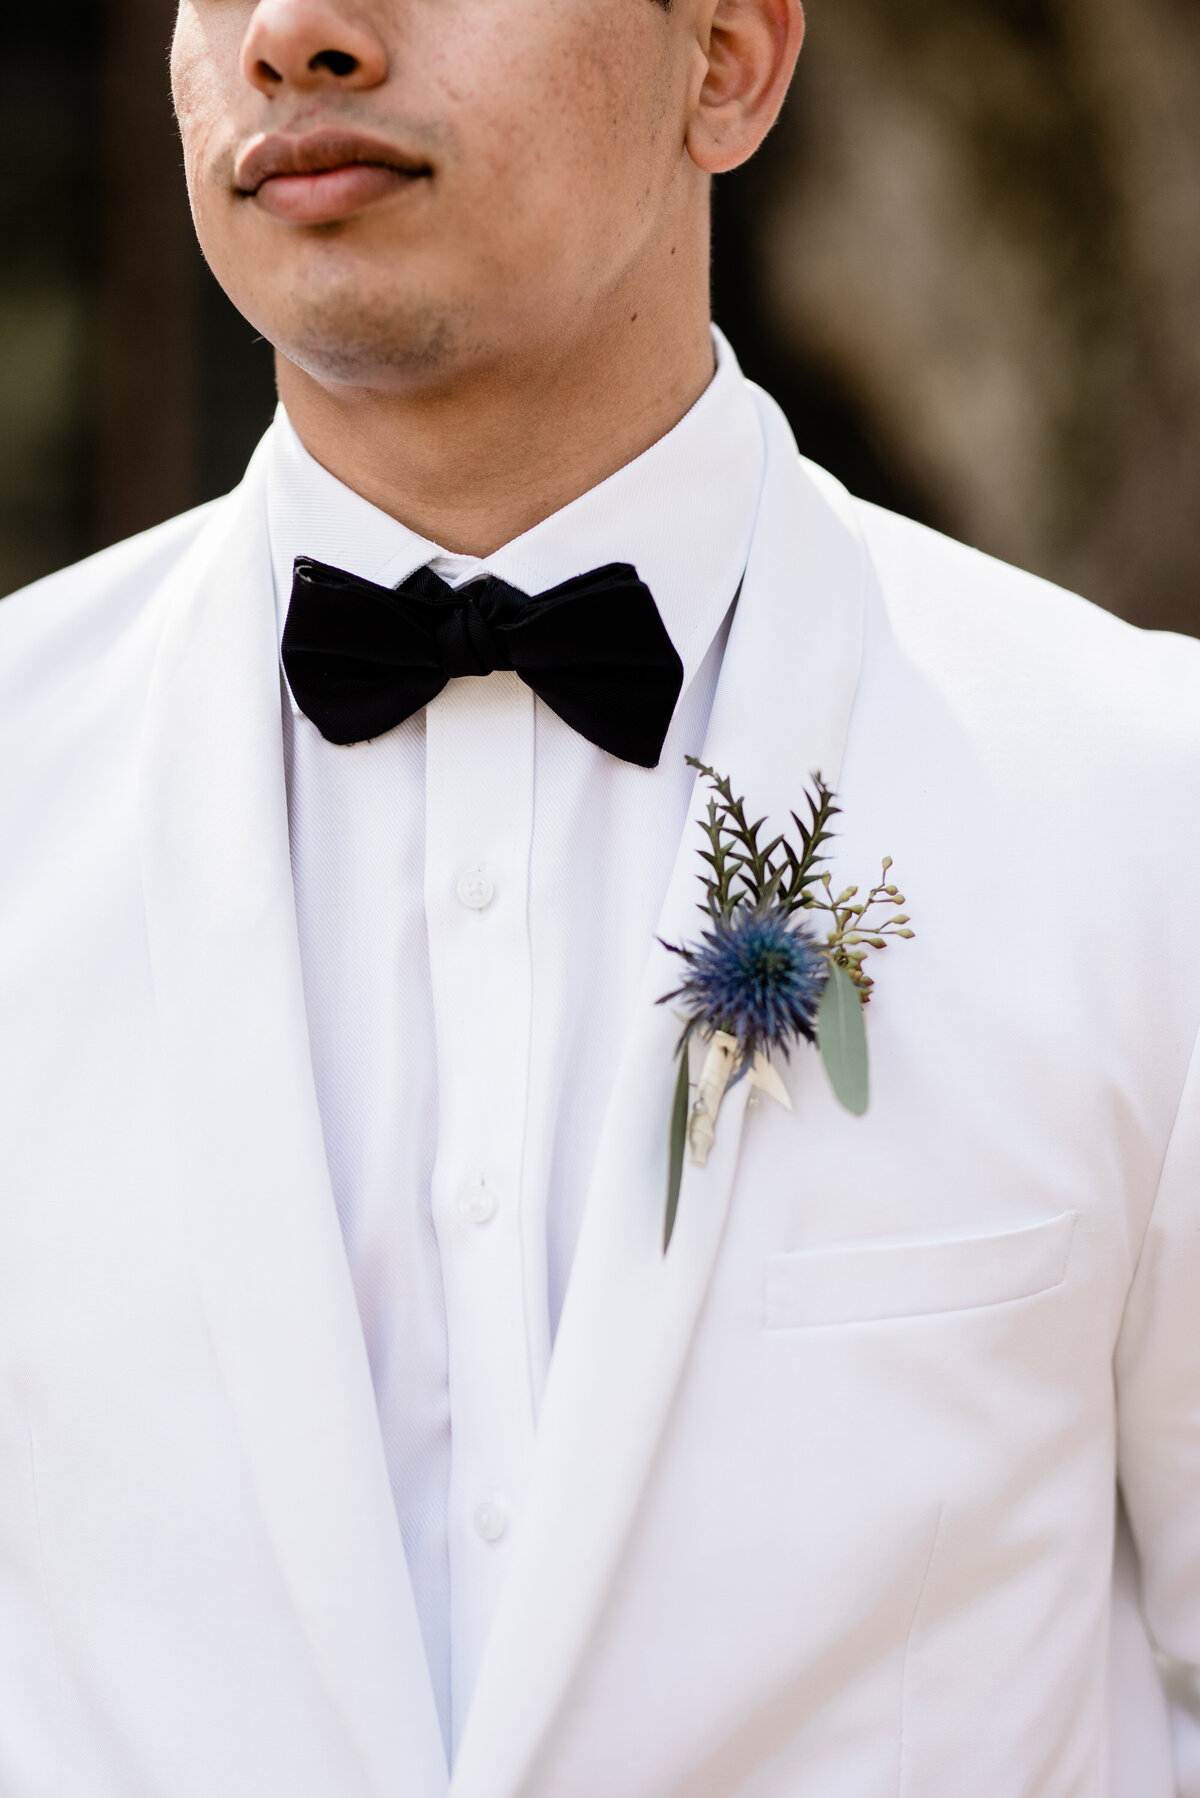 Groom white suit and boutonniere